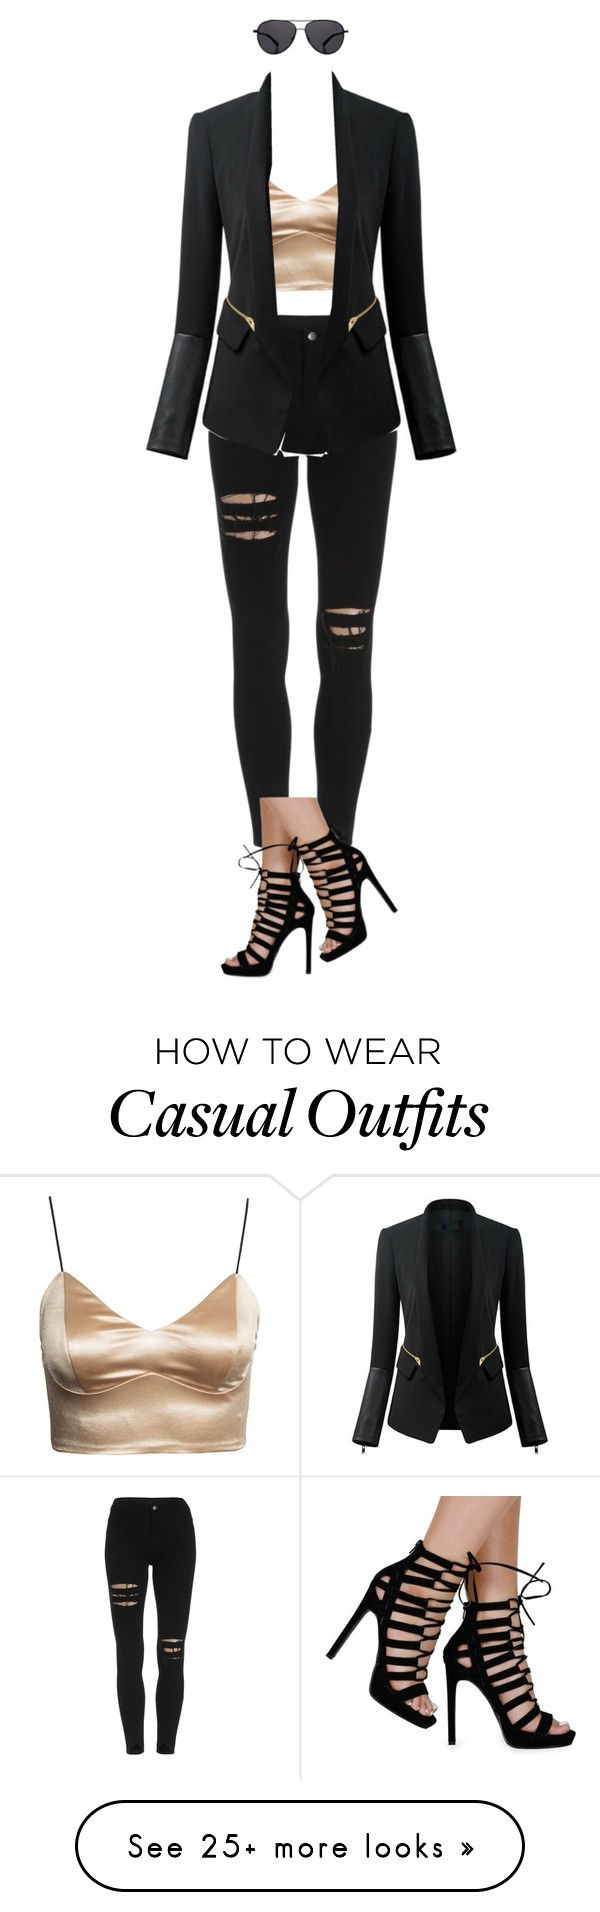 """Smart Casual"" by queen-cait on Polyvore featuring Mode, Chicsense, The Row, women's clothing, women's fashion, women, female, woman, misses und juniors"